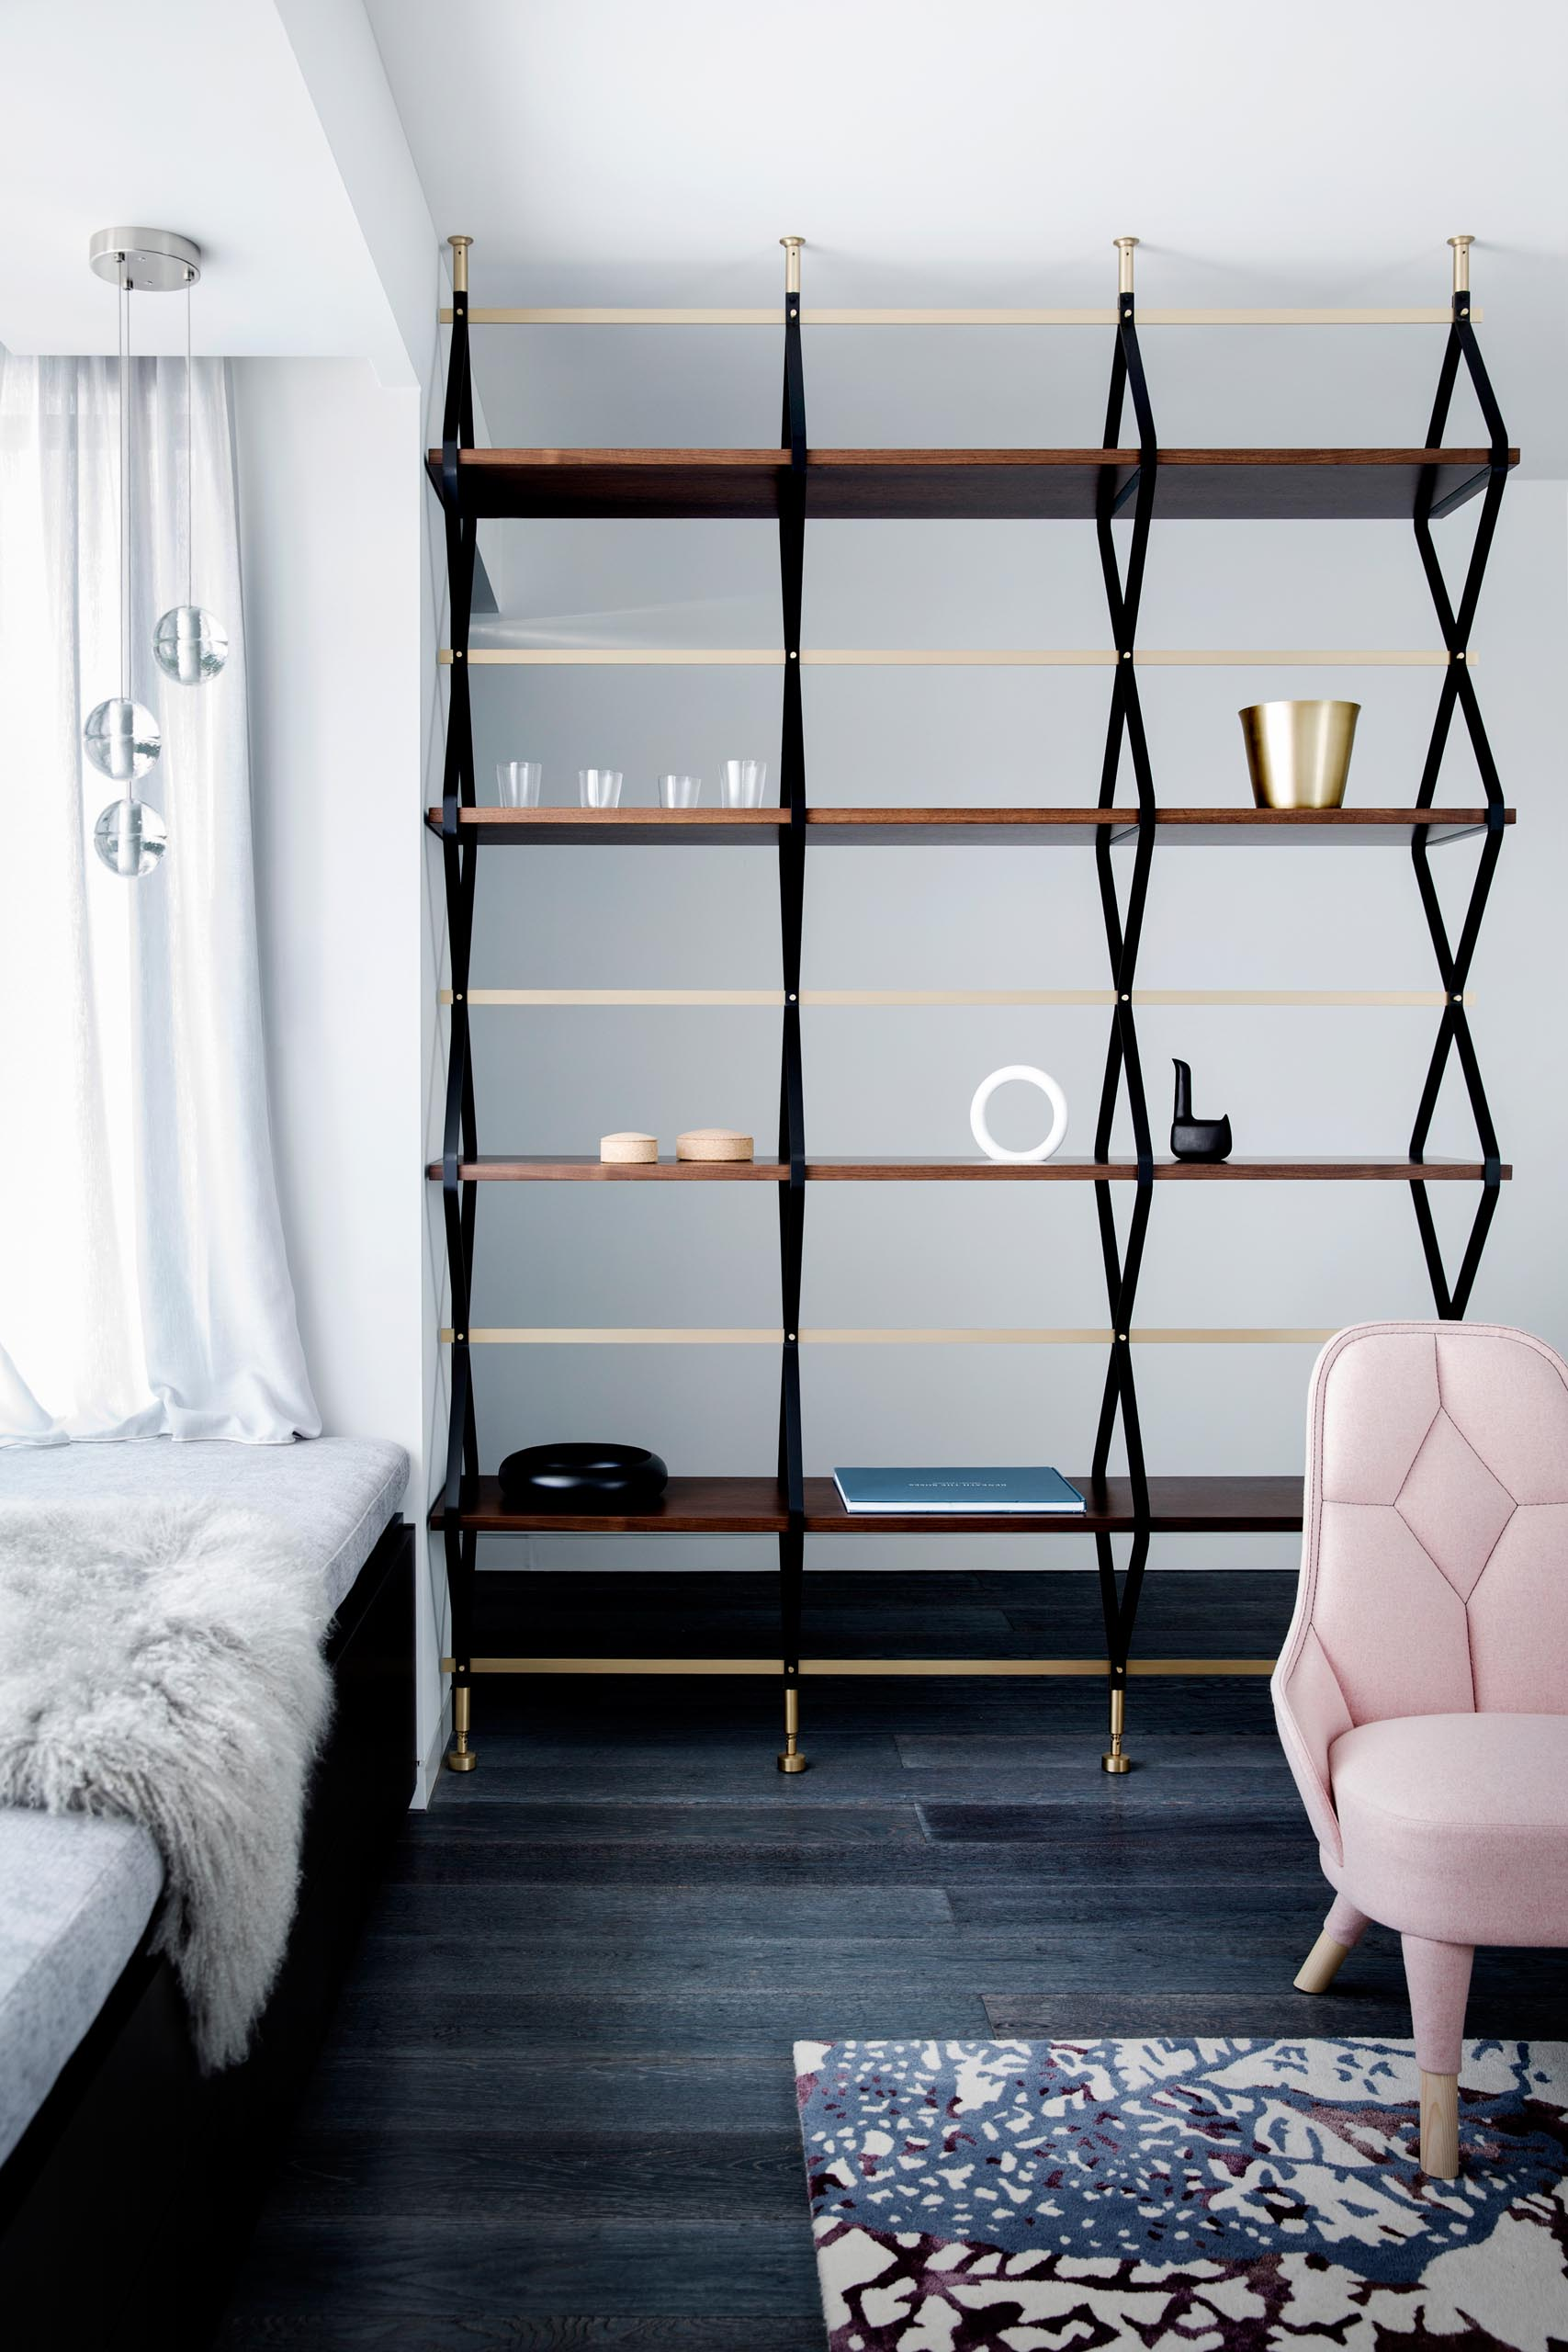 A modern and open shelving unit that acts as a room divider between the living room and entryway.